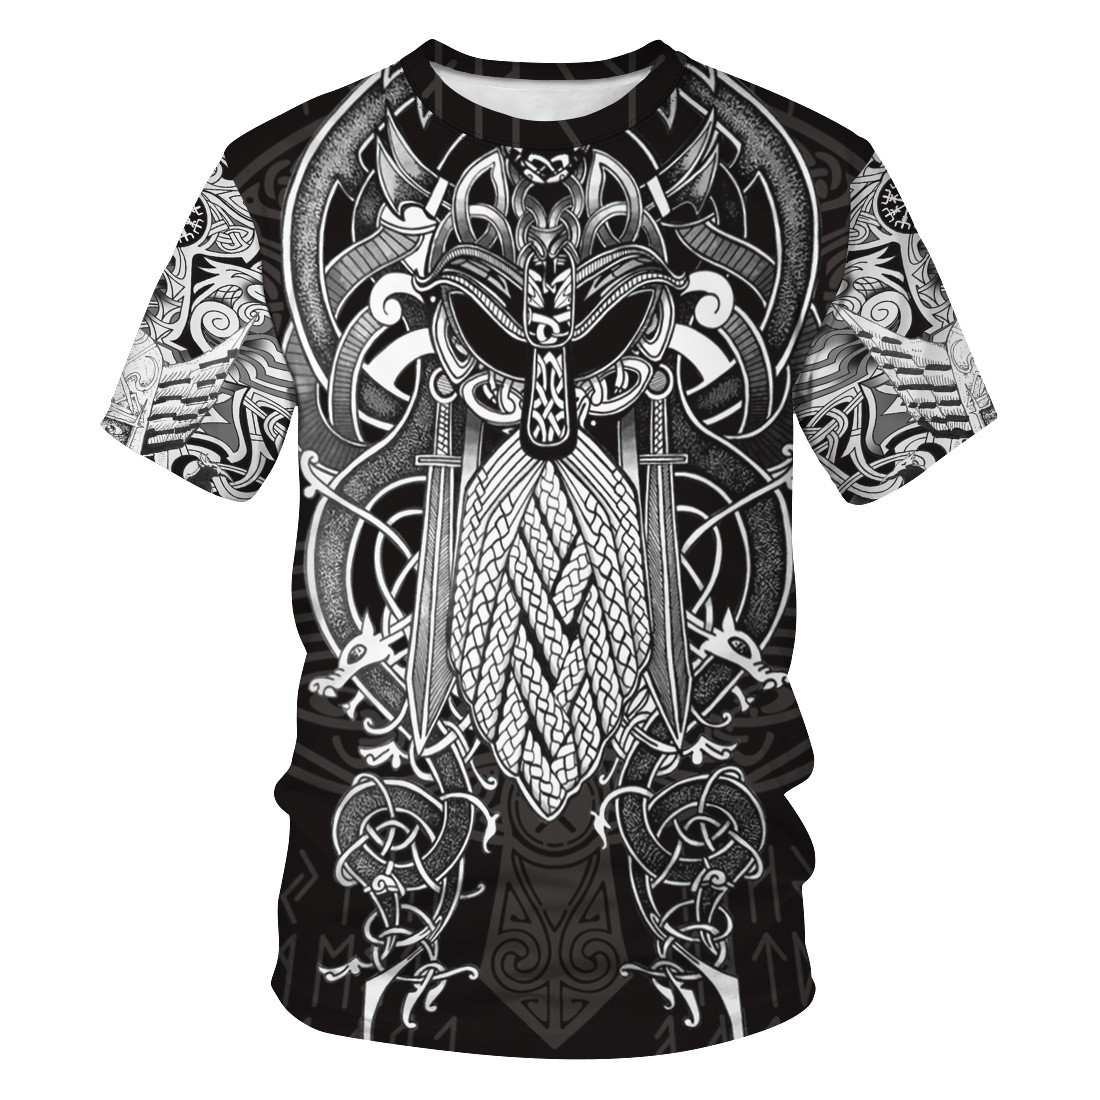 2021 Summer hot sale Viking Myth 3D Print Round Neck T-shirt European and American Fashion Viking streetwear shirt